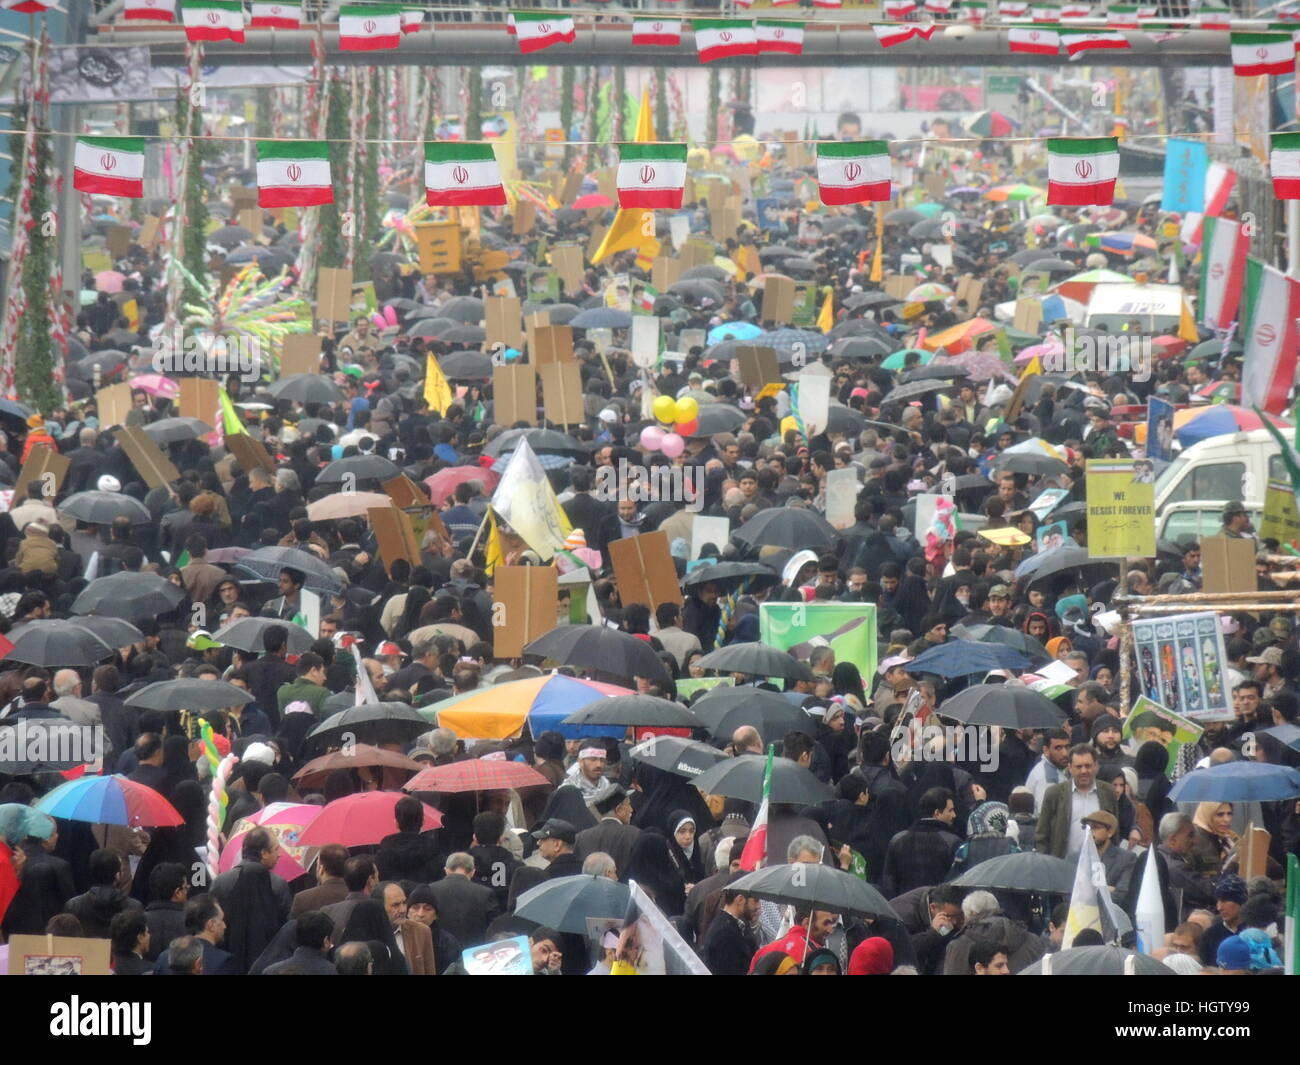 Iranian people crowds for Islamic Revolution anniversary rally, national day of Iran in Tehran - Stock Image